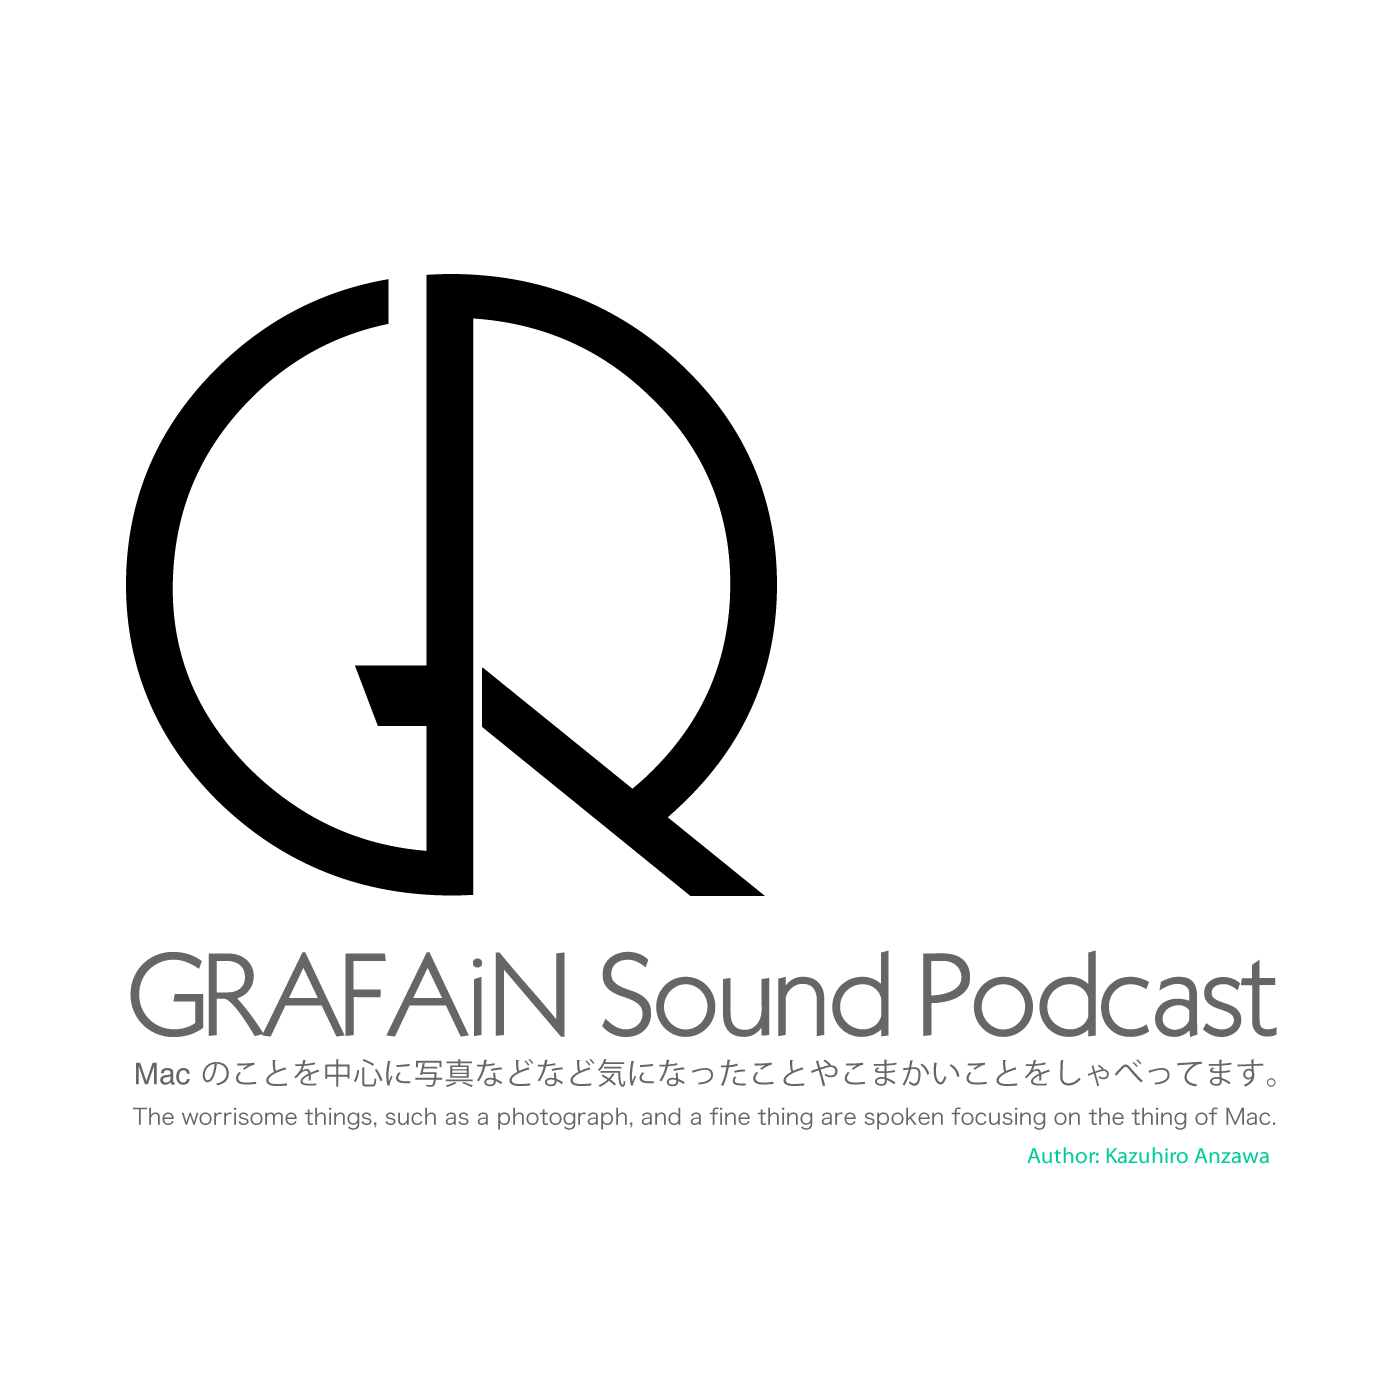 grafain_sound_podcast_logo3_1400px